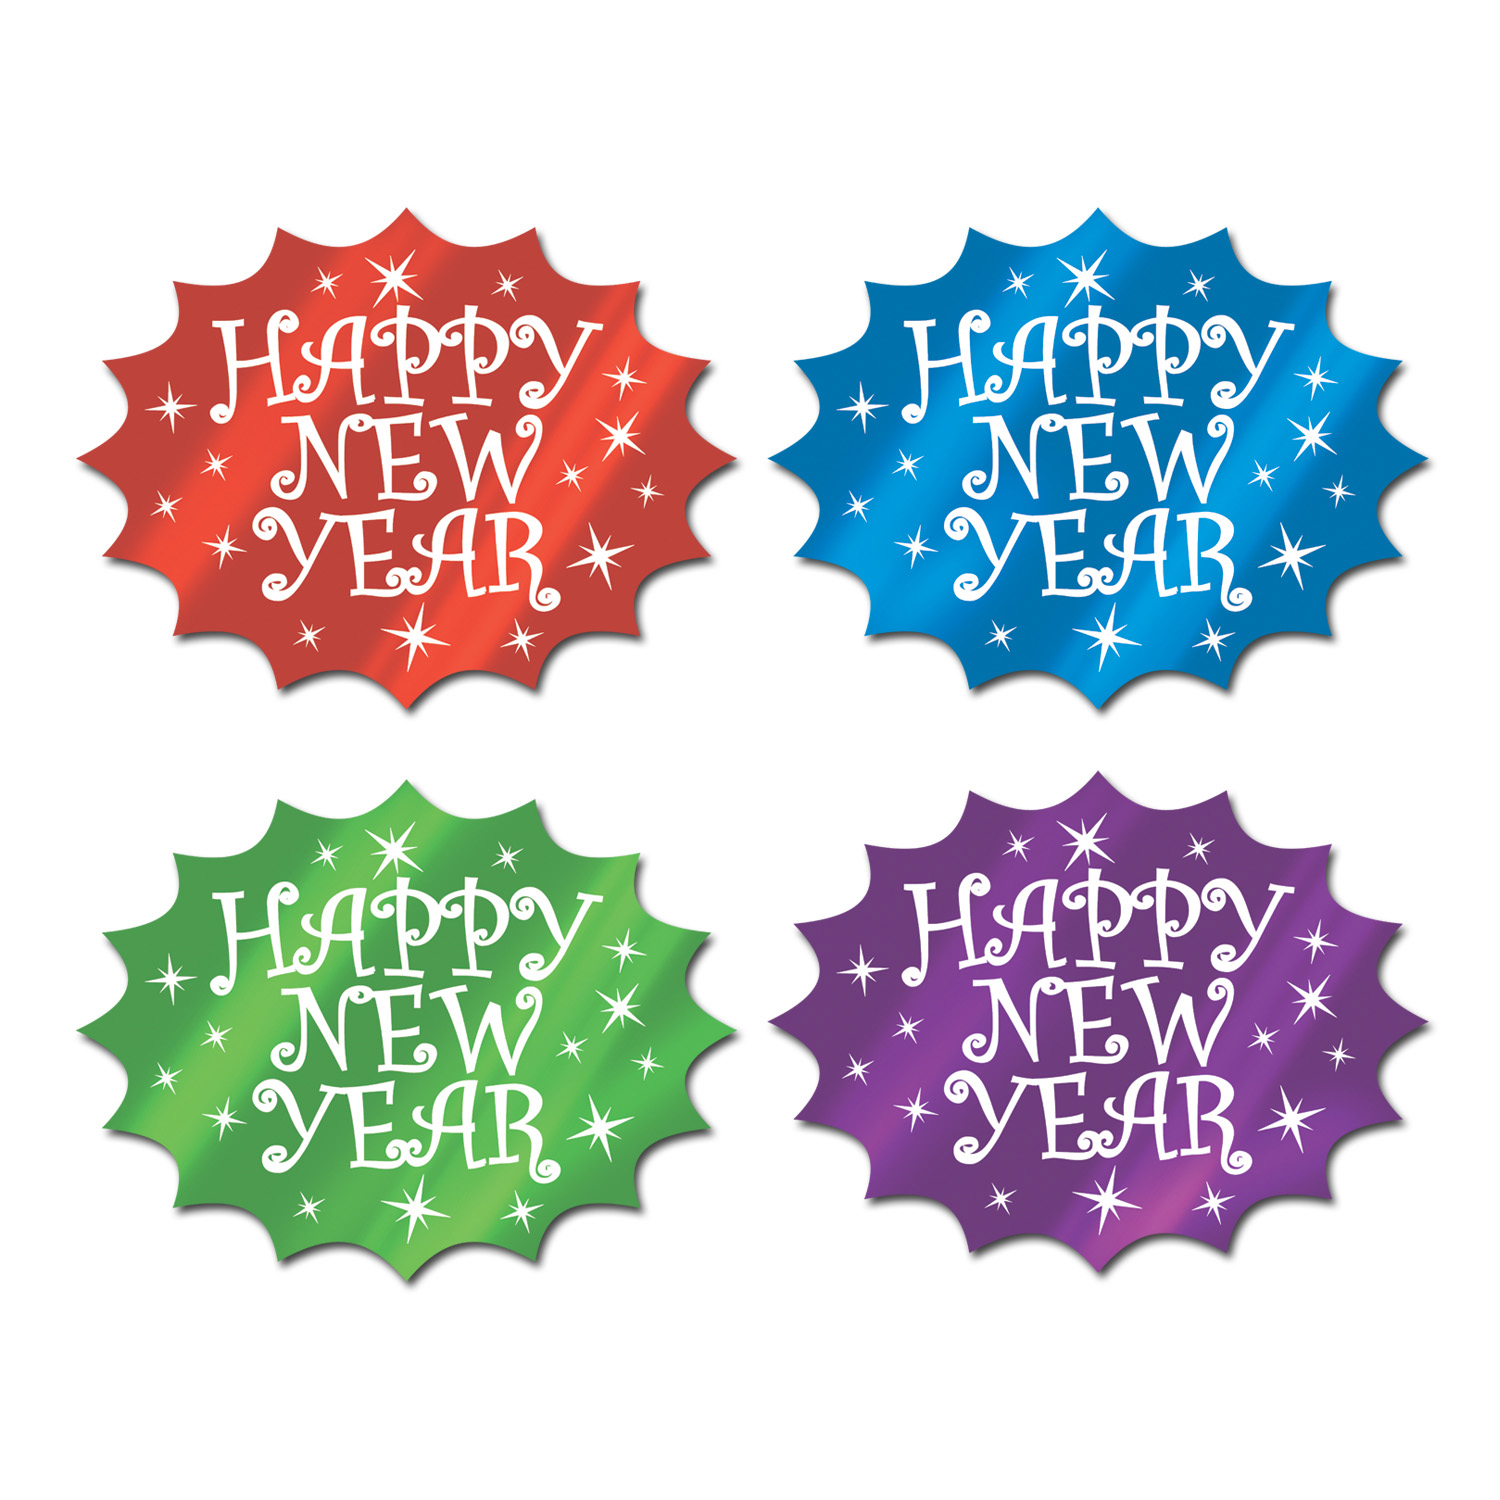 Foil Happy New Year Cutout (Pack of 24) foil, happy, new, year, cutout, eve, party, table, hanging, wall, decoration, photo, prop, pack